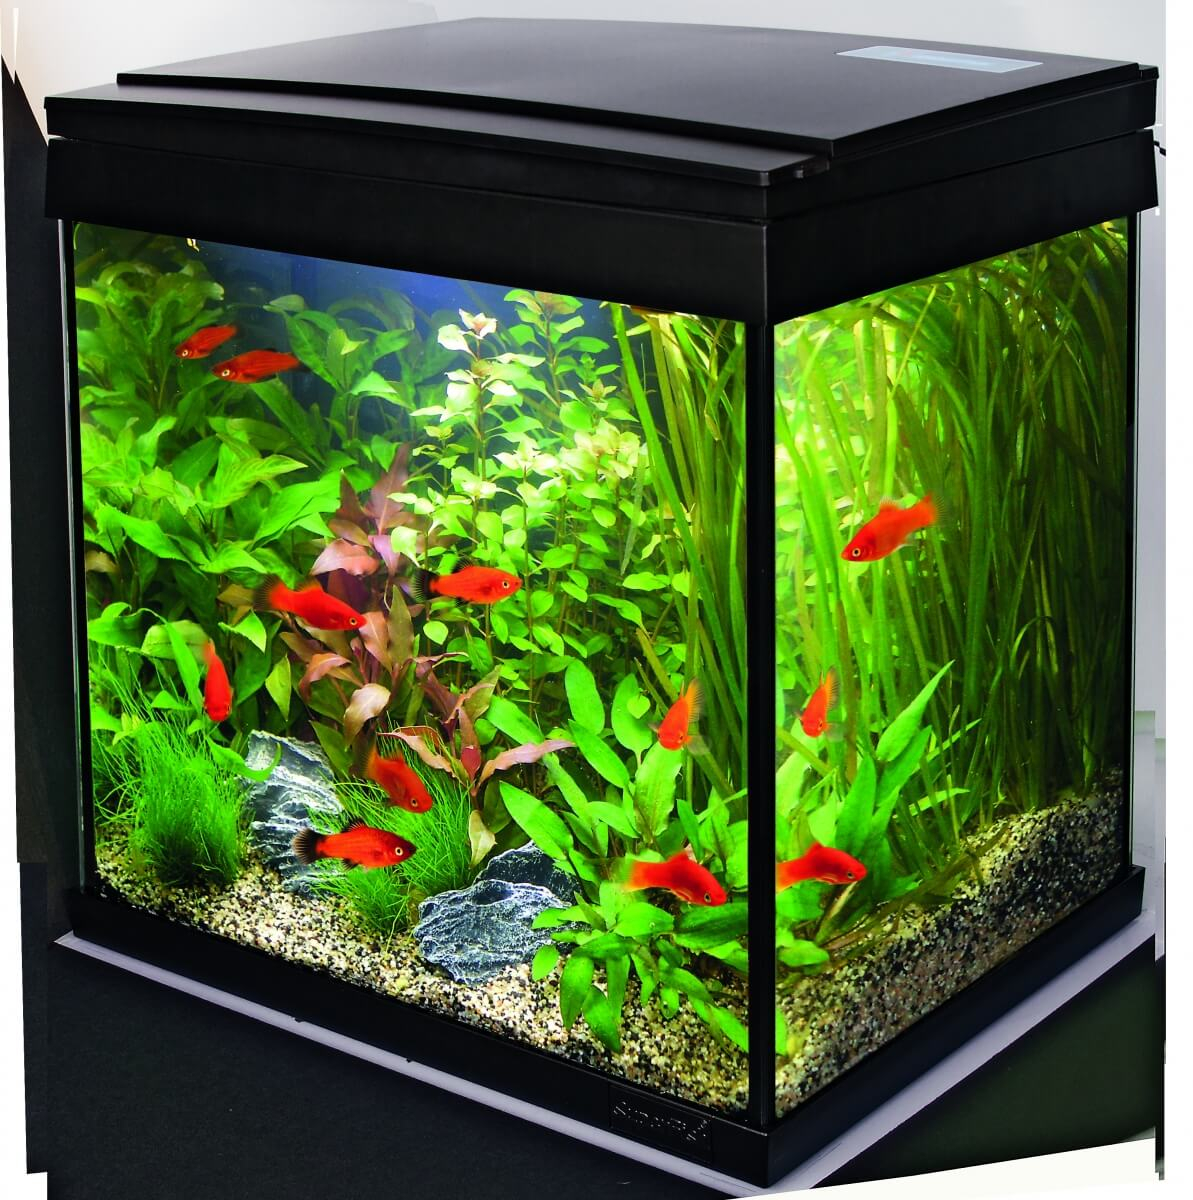 aquariums aqua 30 led tropical set aquarien m bel. Black Bedroom Furniture Sets. Home Design Ideas